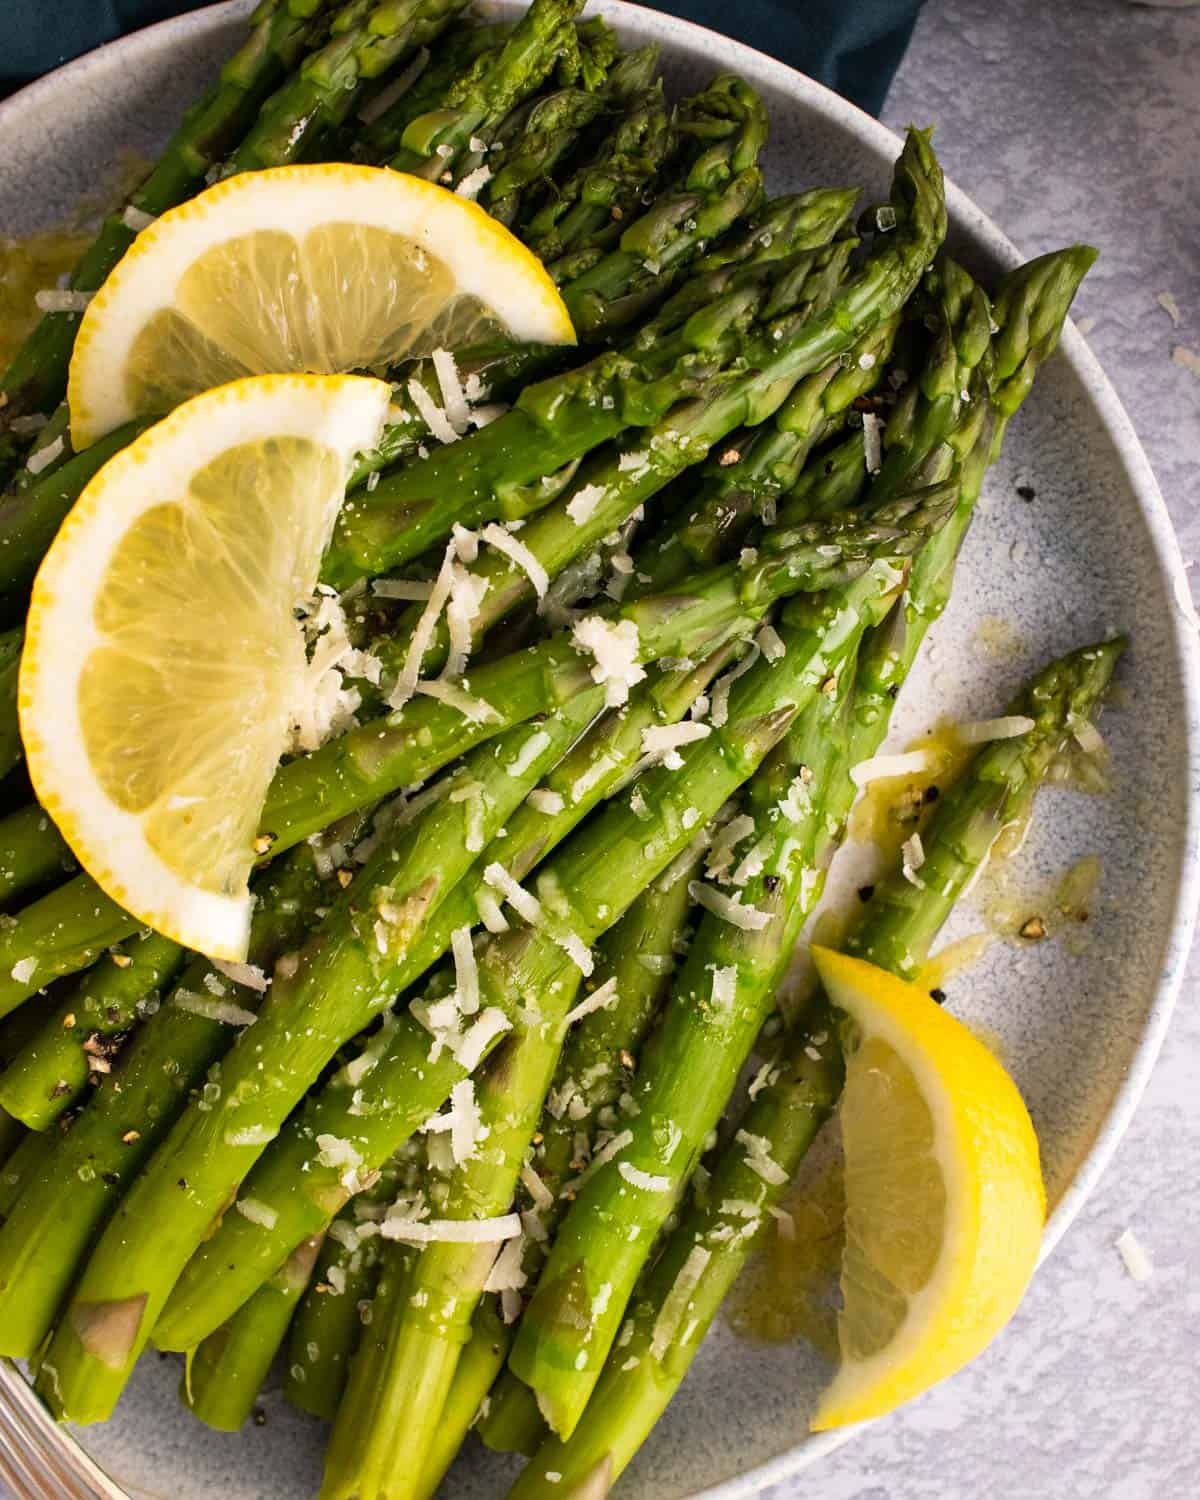 Instant Pot steamed asparagus on a plate with lemon wedges and Parmesan.